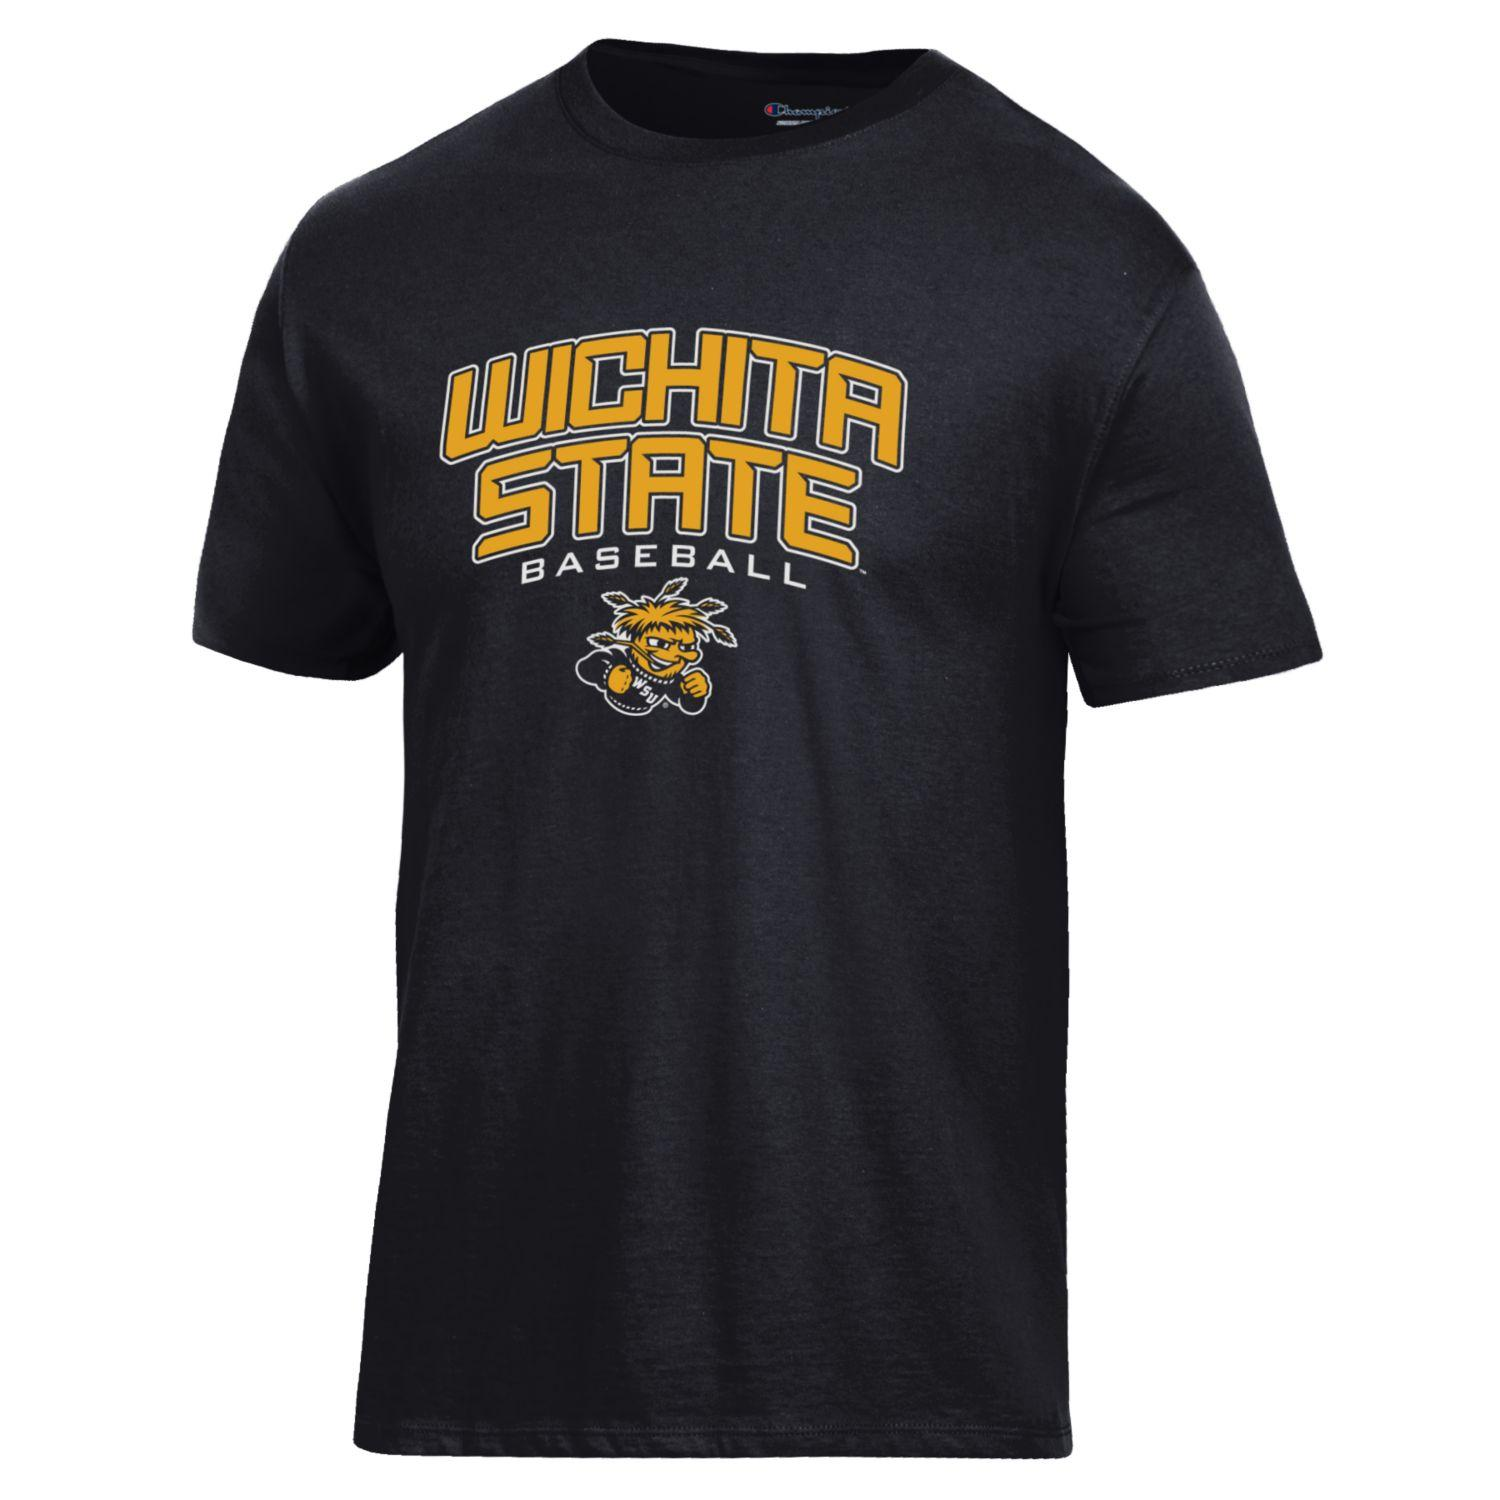 Image For Champion® Wichita State™ Baseball T-Shirt